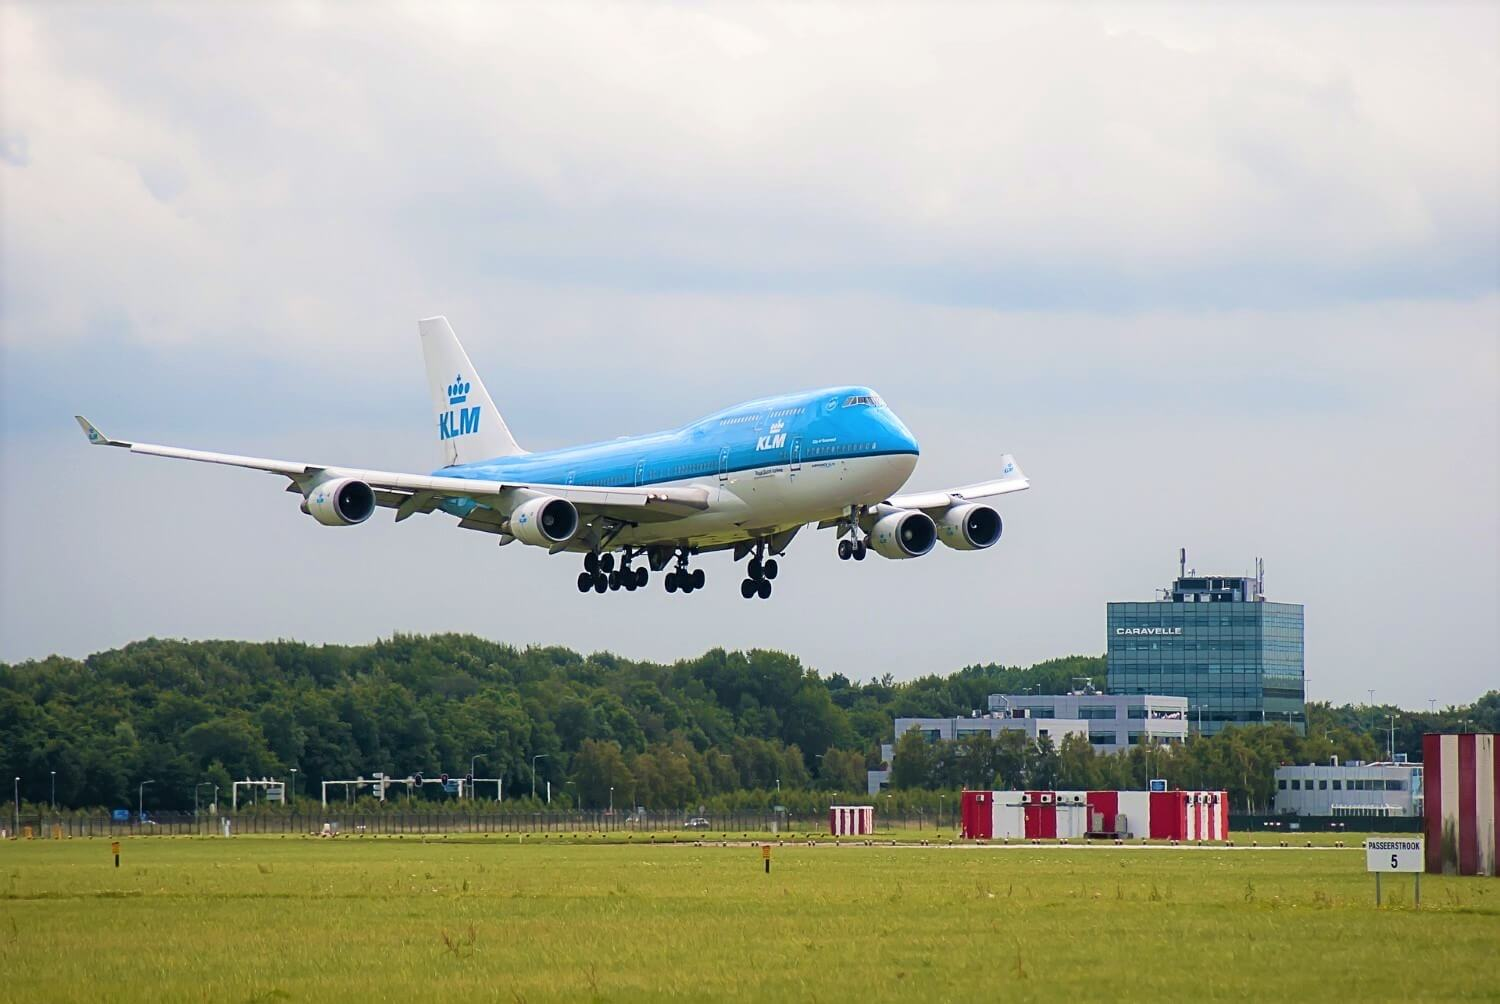 The International Airport of Amsterdam, Schiphol